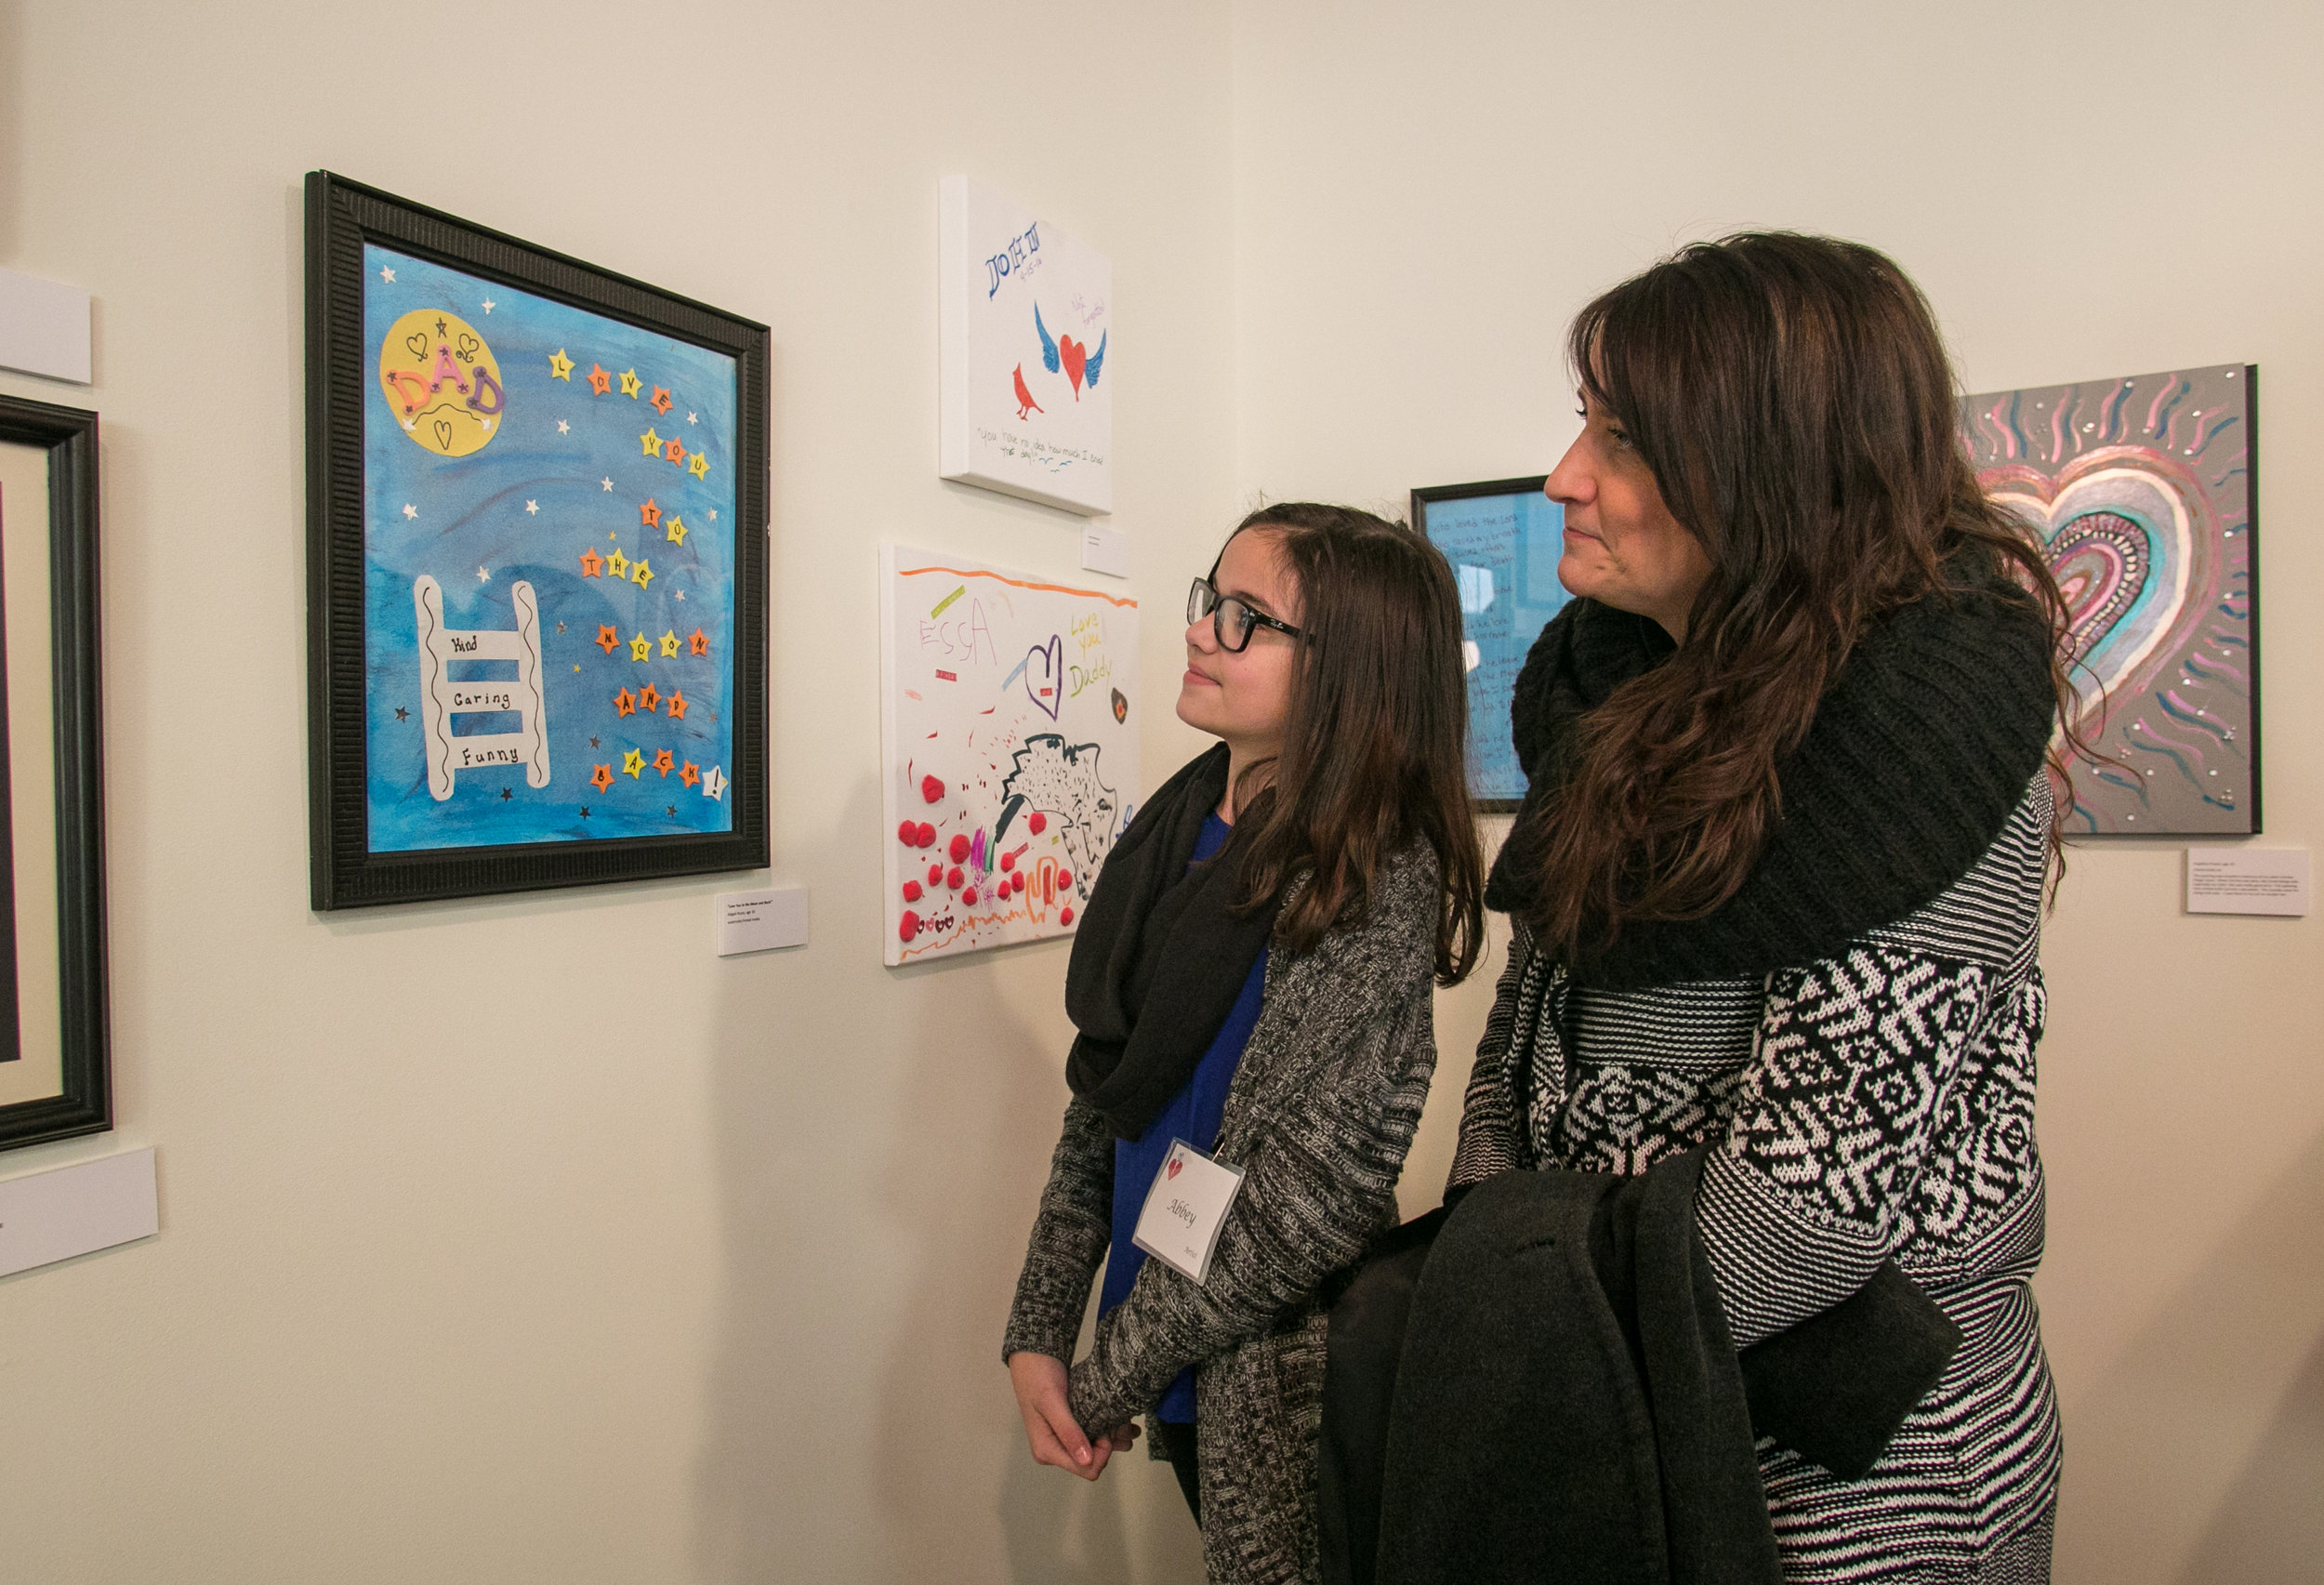 3/12/17 - Sweetwater UPMC Children's Art Show - Beaver County Times